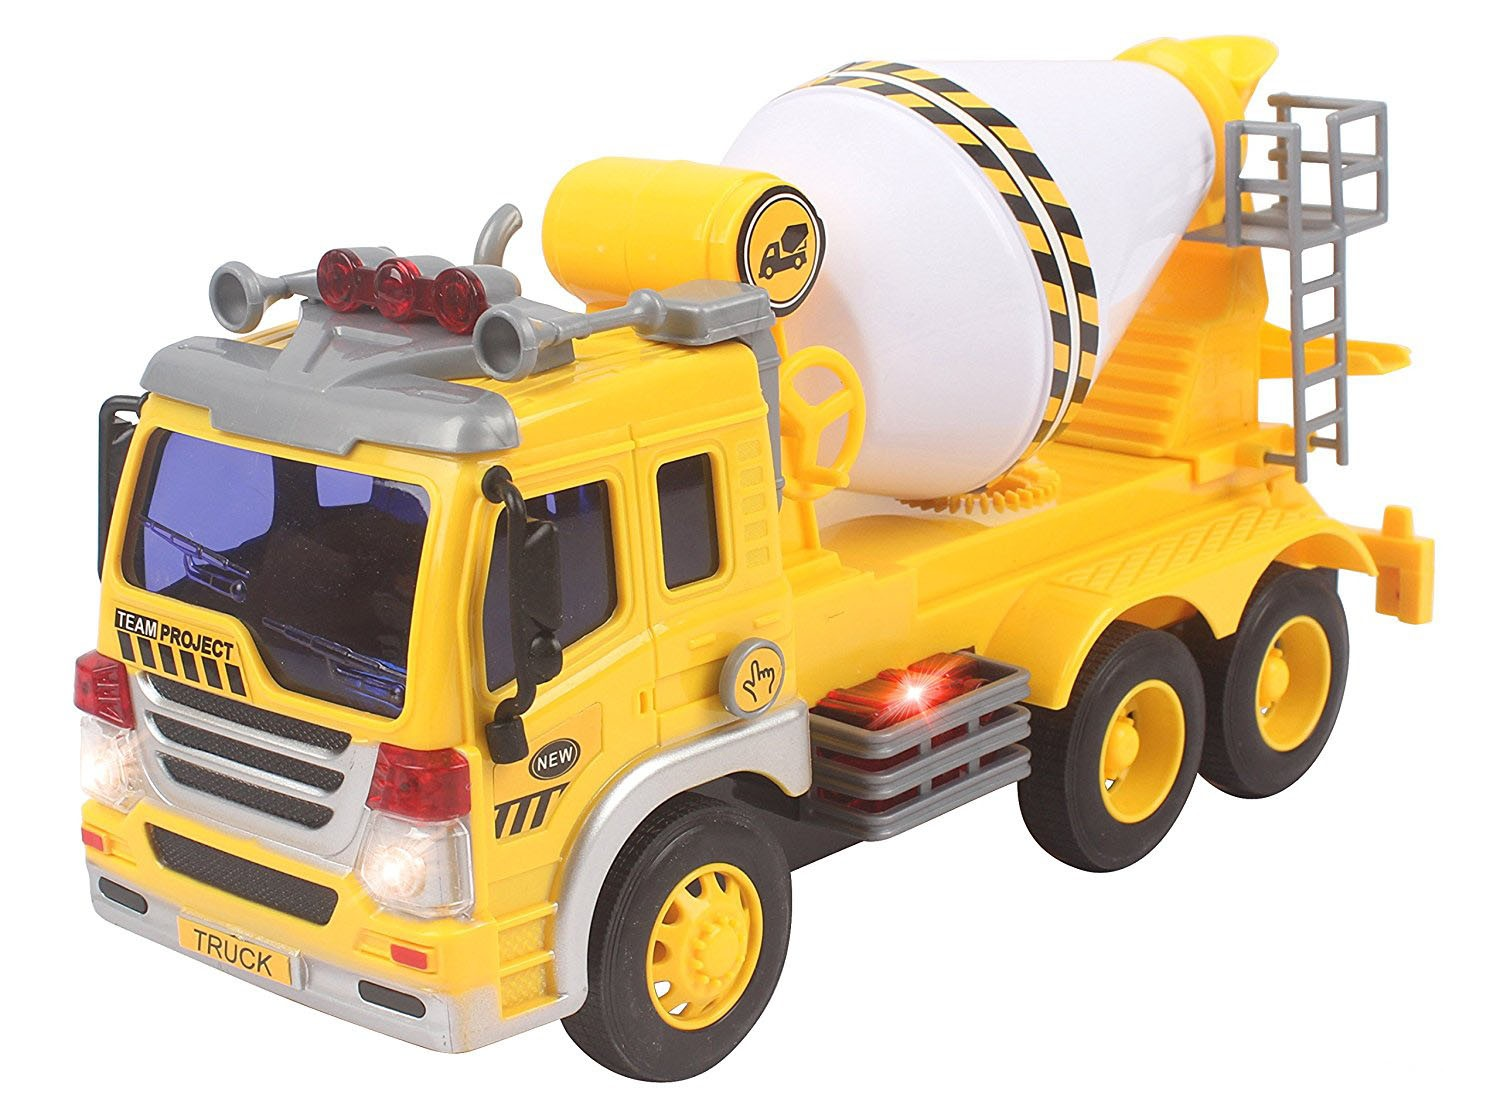 Friction Powered Cement Mixer Truck Toy With Lights And Sound